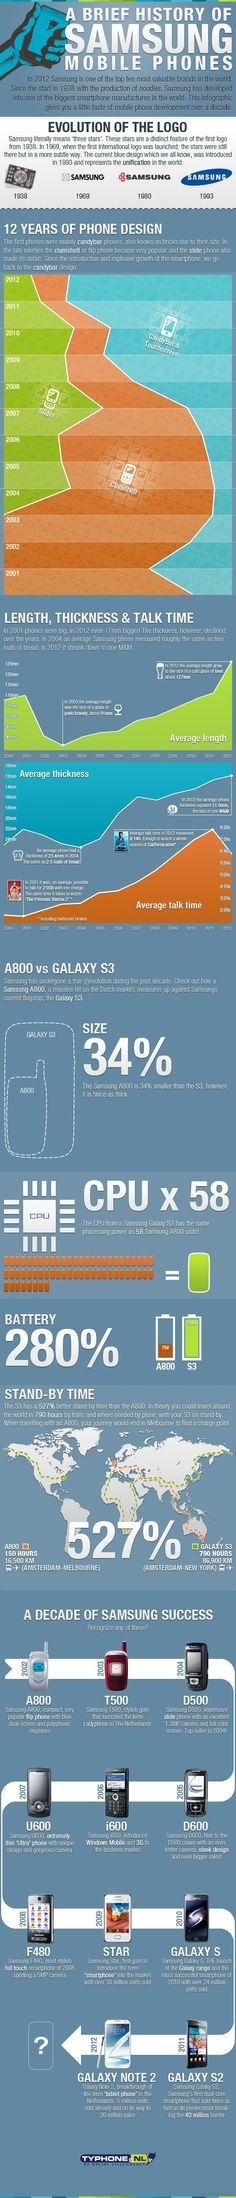 A brief history of Samsung mobile phone #infografia #infographic